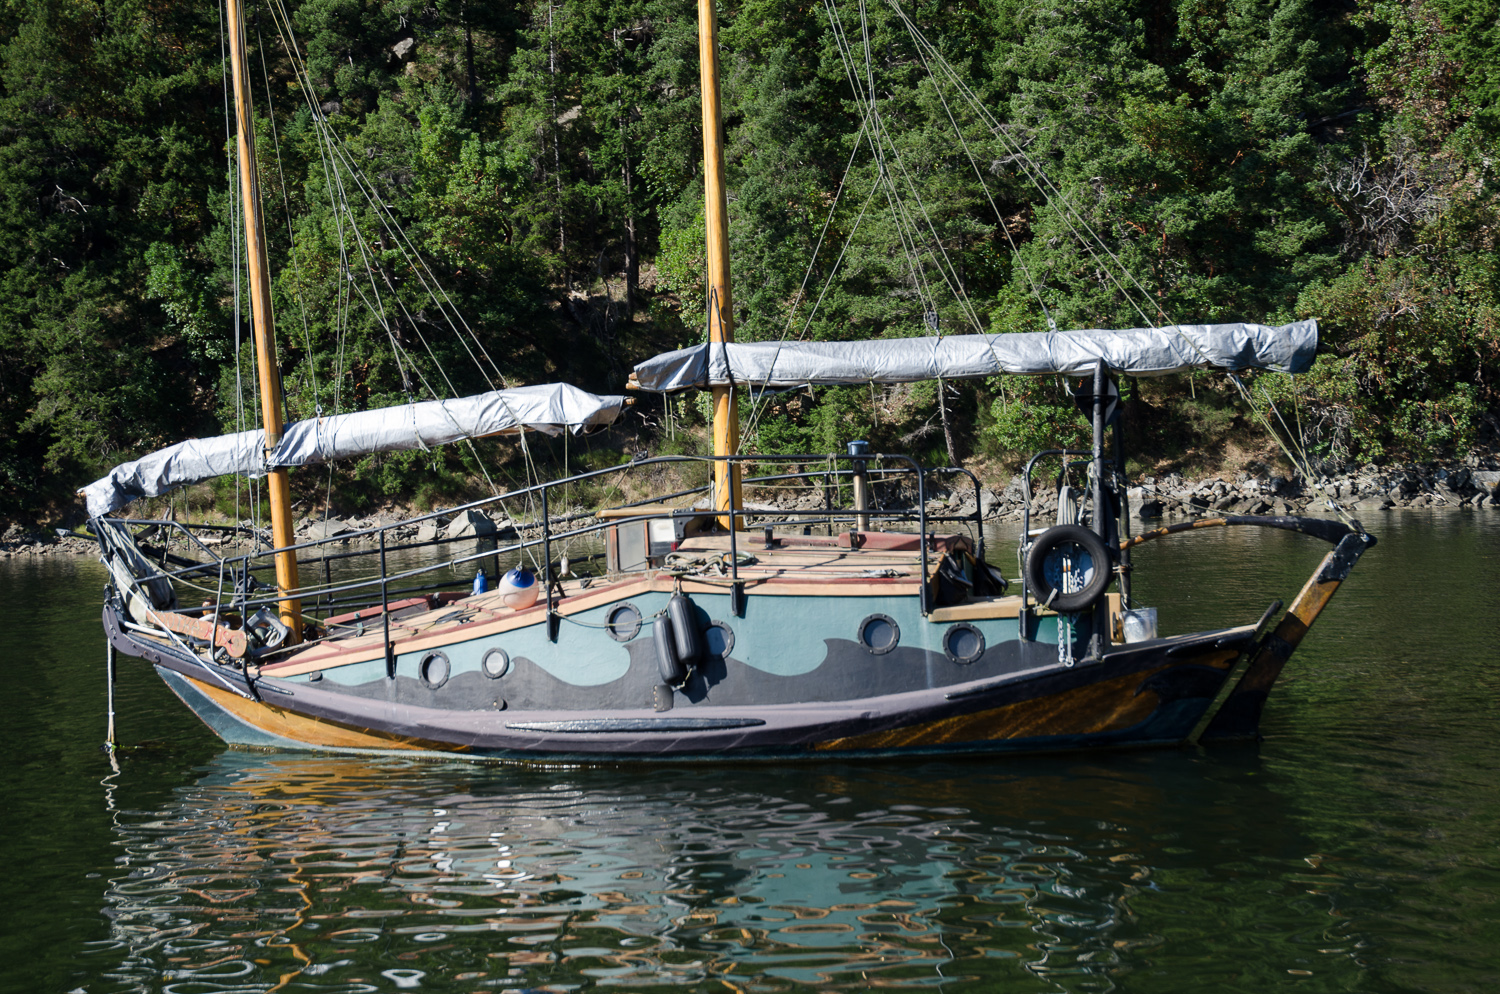 Pacific Wooden Boats | Wooden Boat Culture In The Pacific North West | Page 2